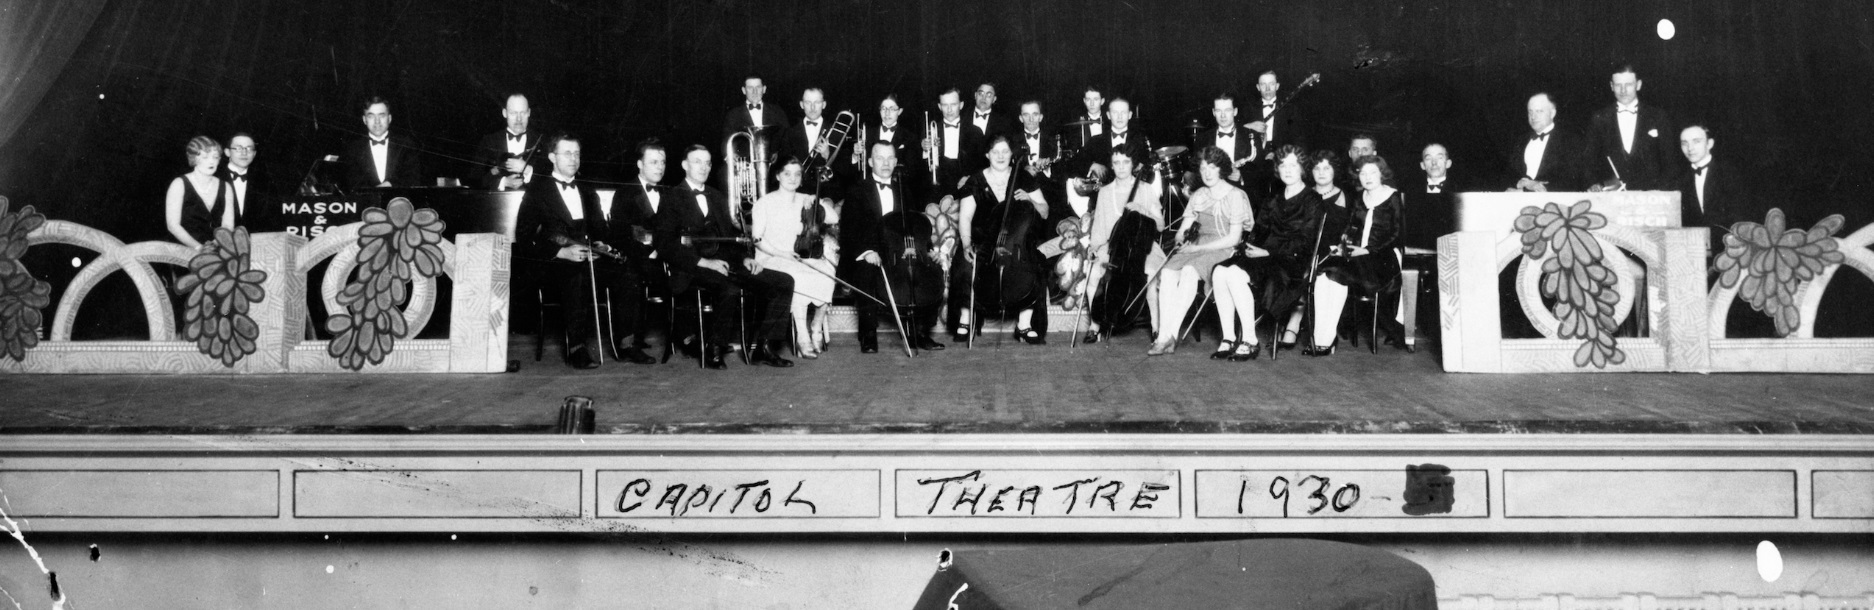 The popular Quaker Oats Orchestra concerts, broadcast live over the radio from the Capitol, began in about 1933. (Saskatoon Public Library Local History Room; item PH-88-590)